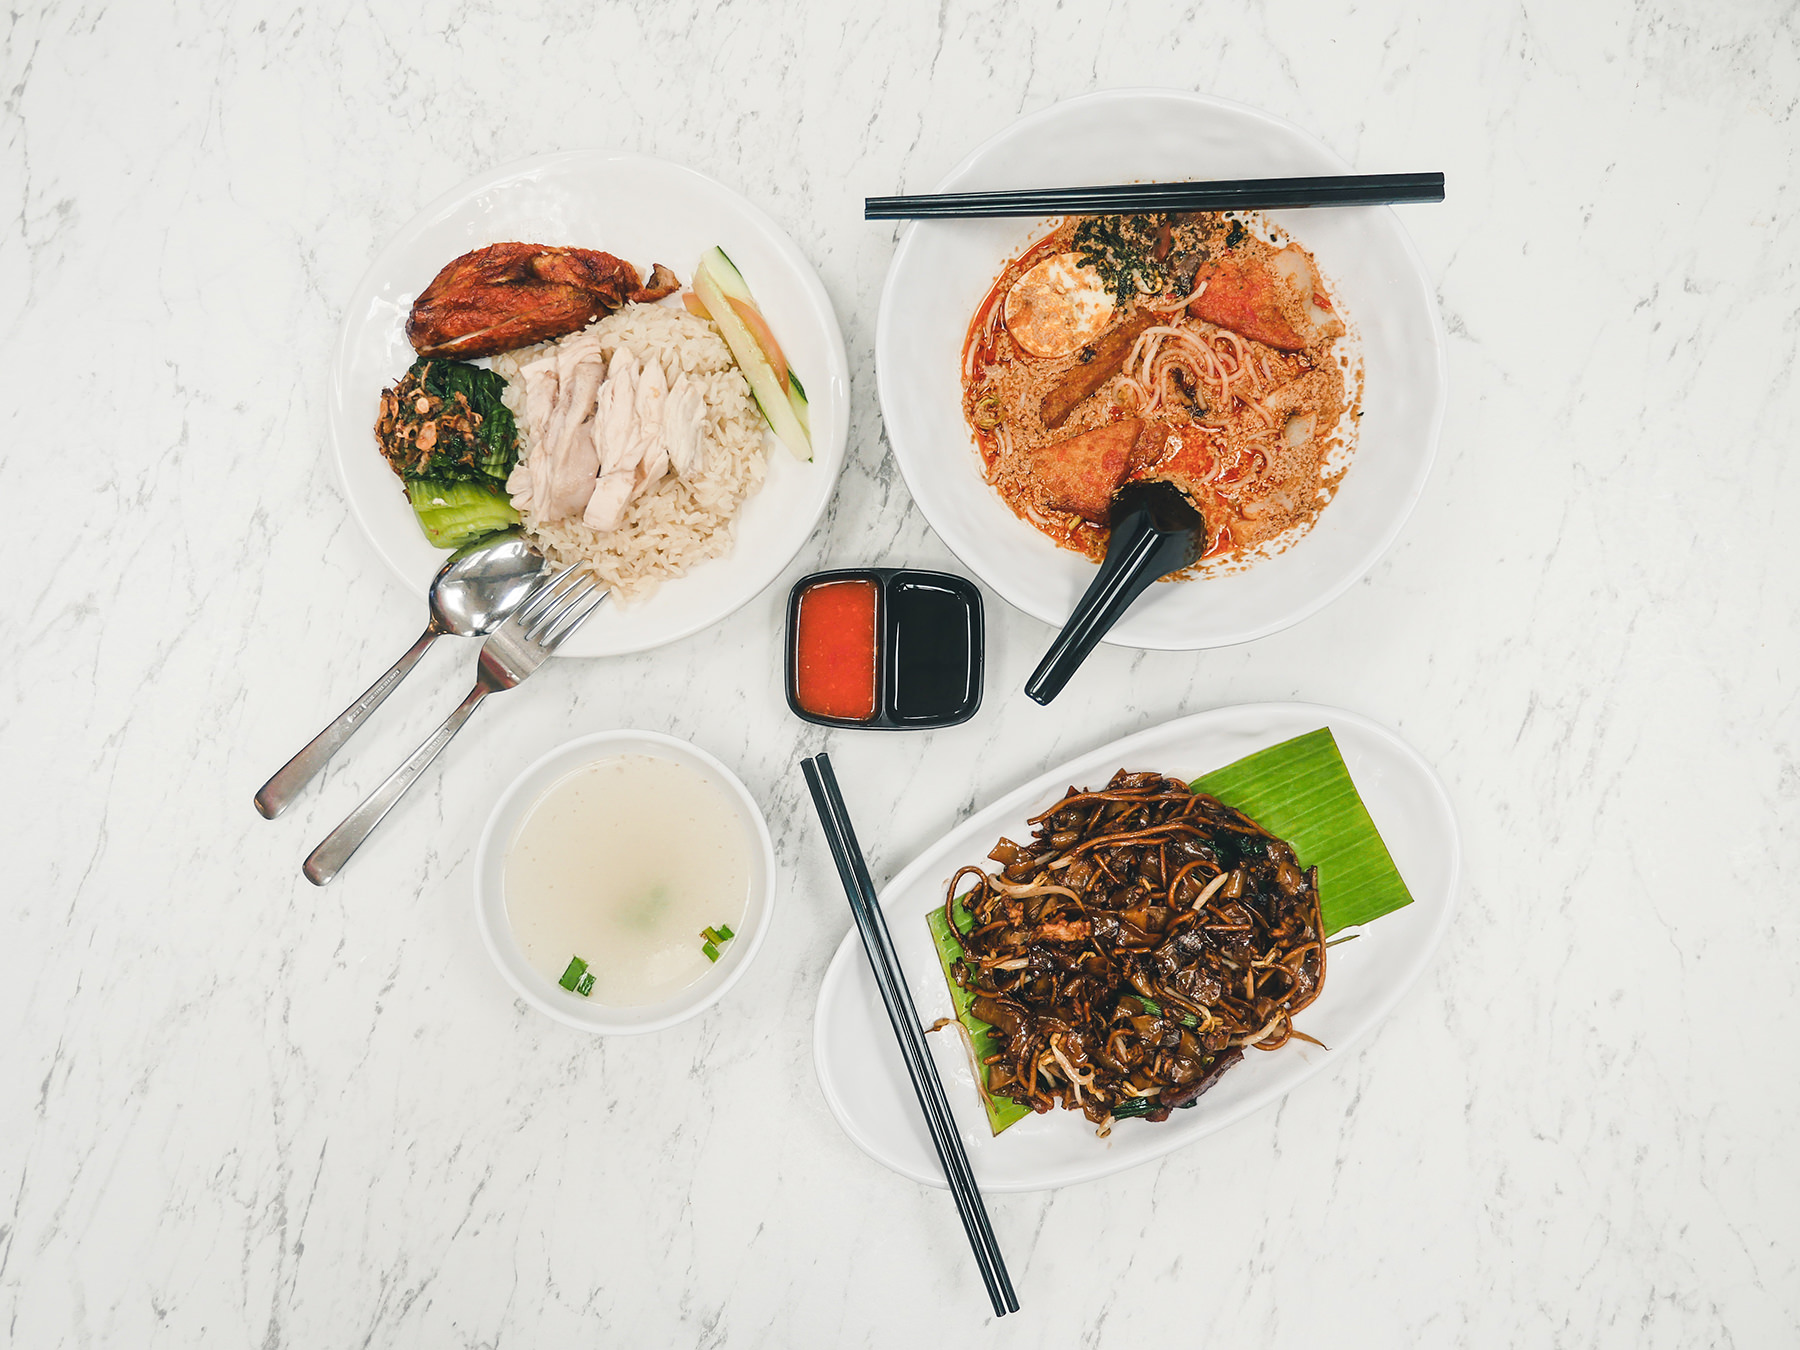 What: Singapore Food Street<br>Where: Terminal 3 Departure Transit Hall Lounge (Central)